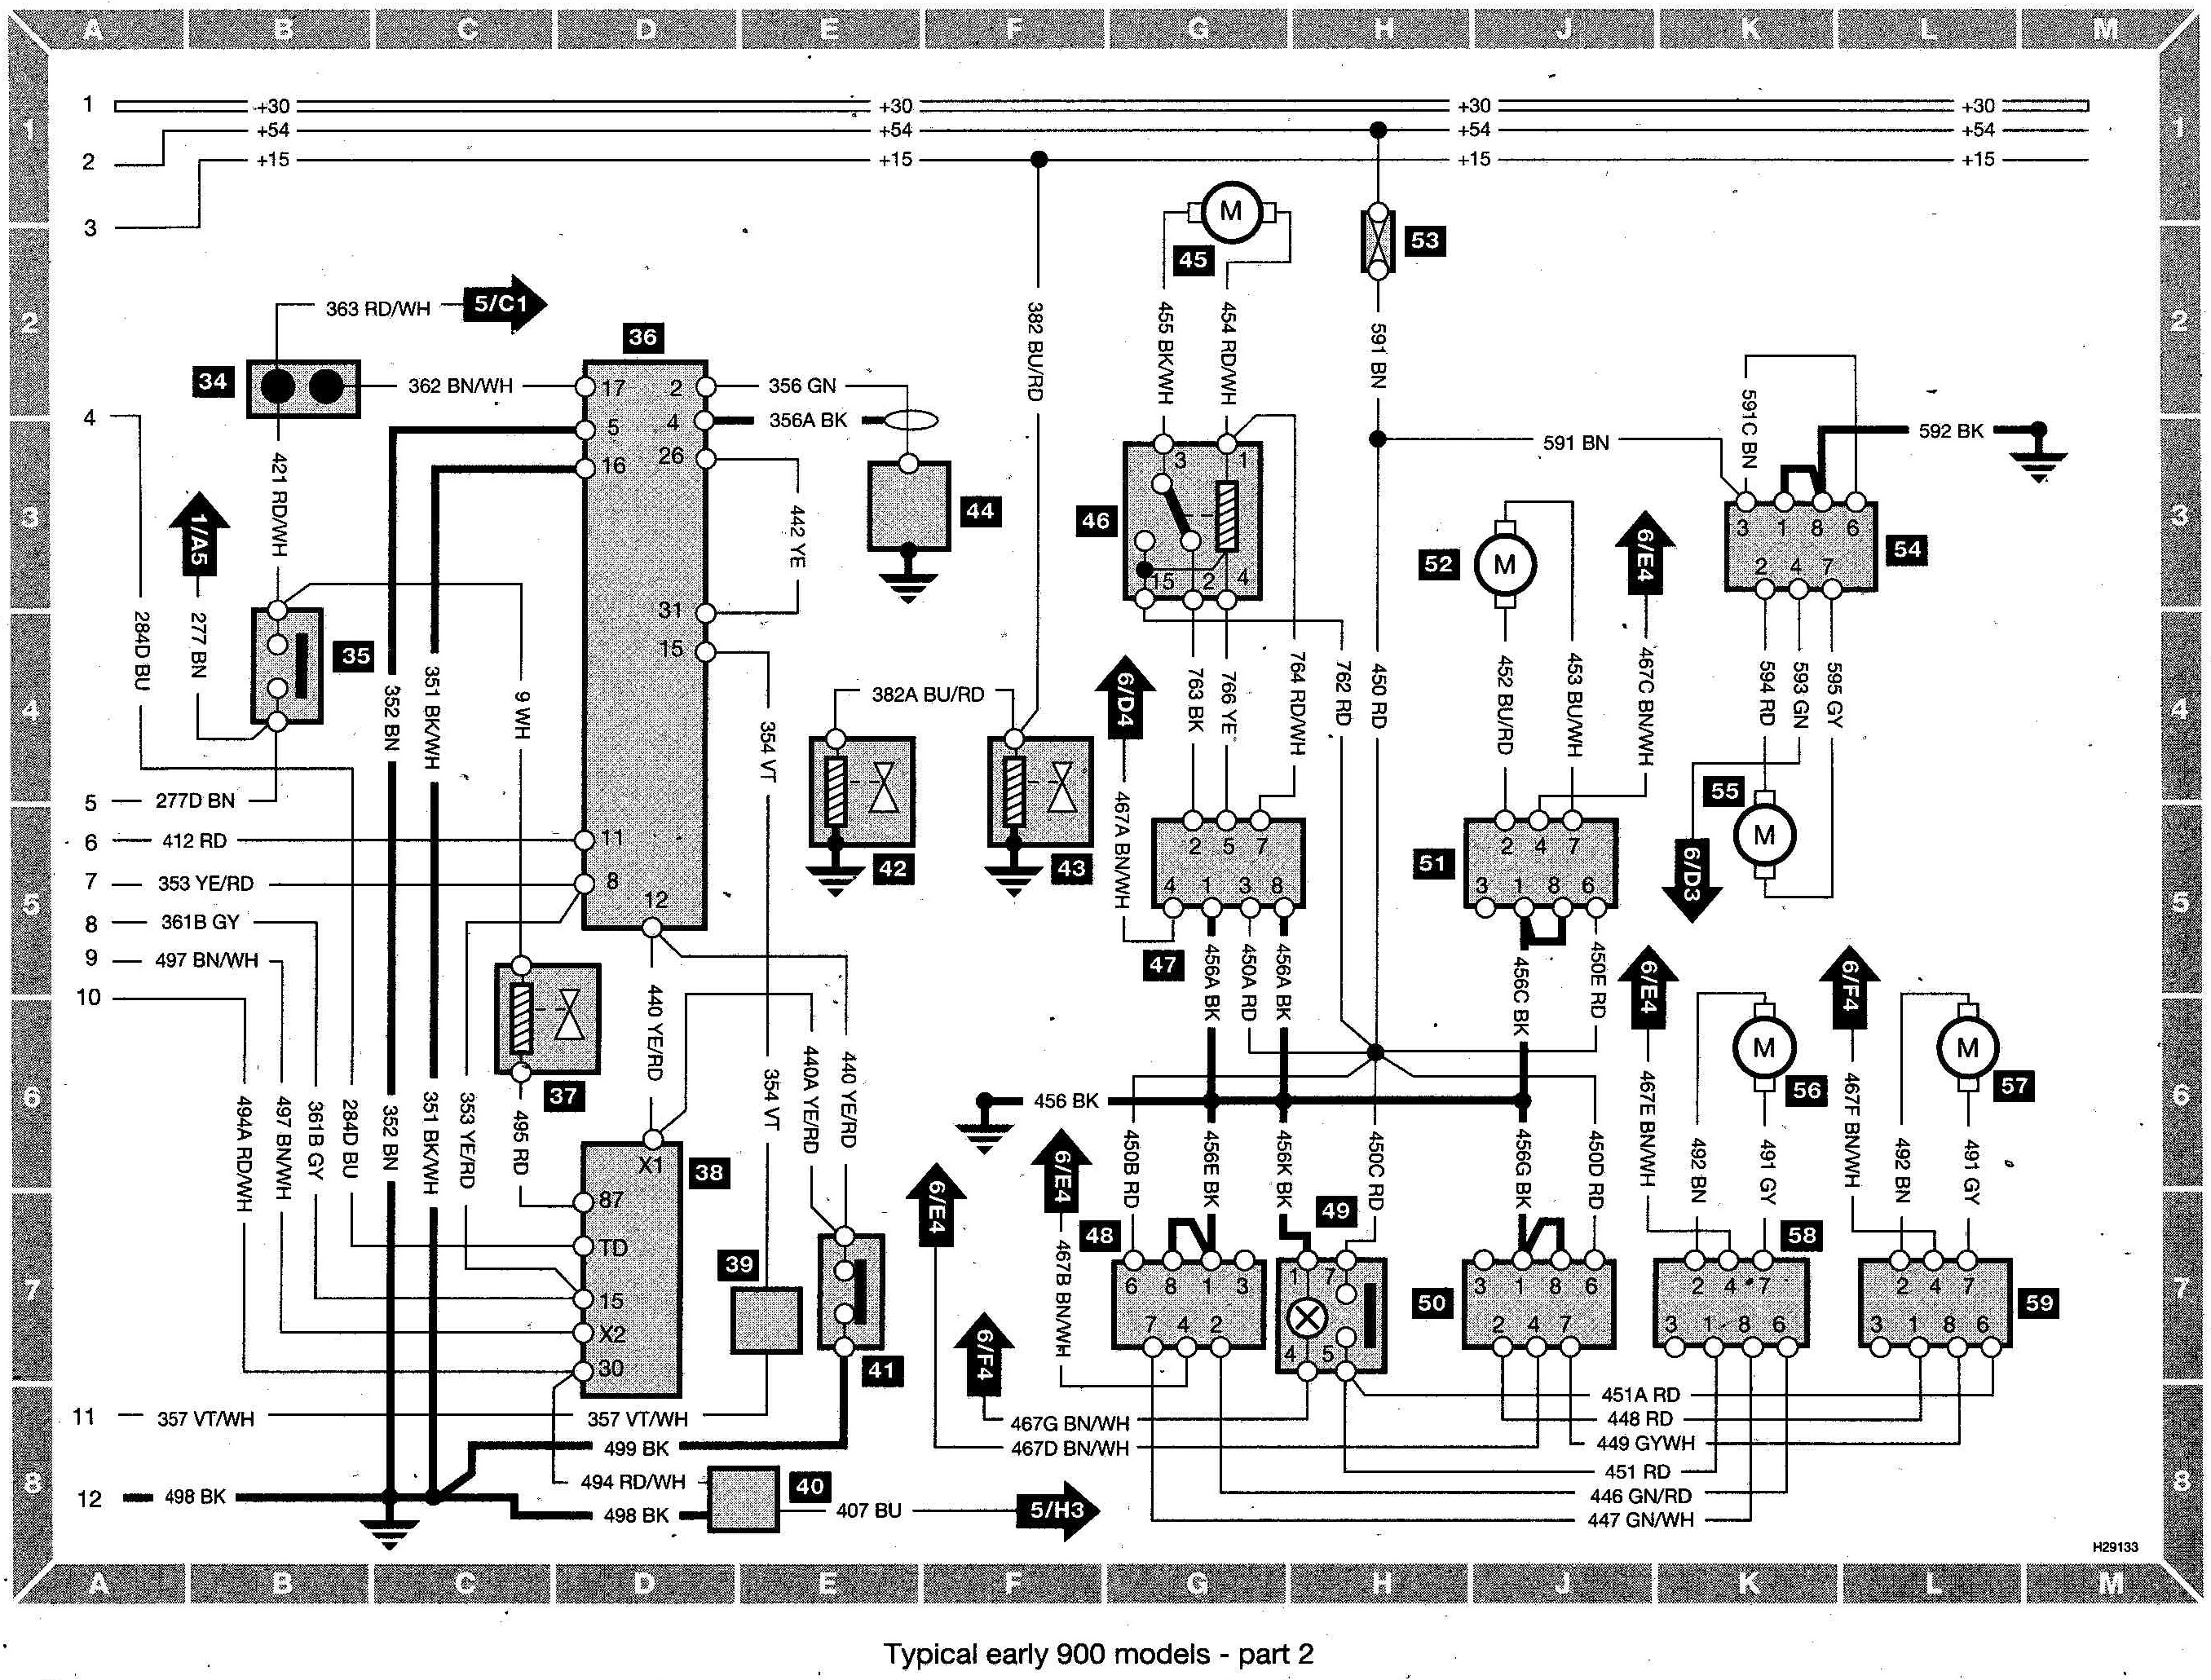 Saab 900 Wiring diagram (early models) part 2 saab 95 seat wiring diagram saab wiring diagrams instruction 2002 saab 93 radio wiring diagram at cos-gaming.co